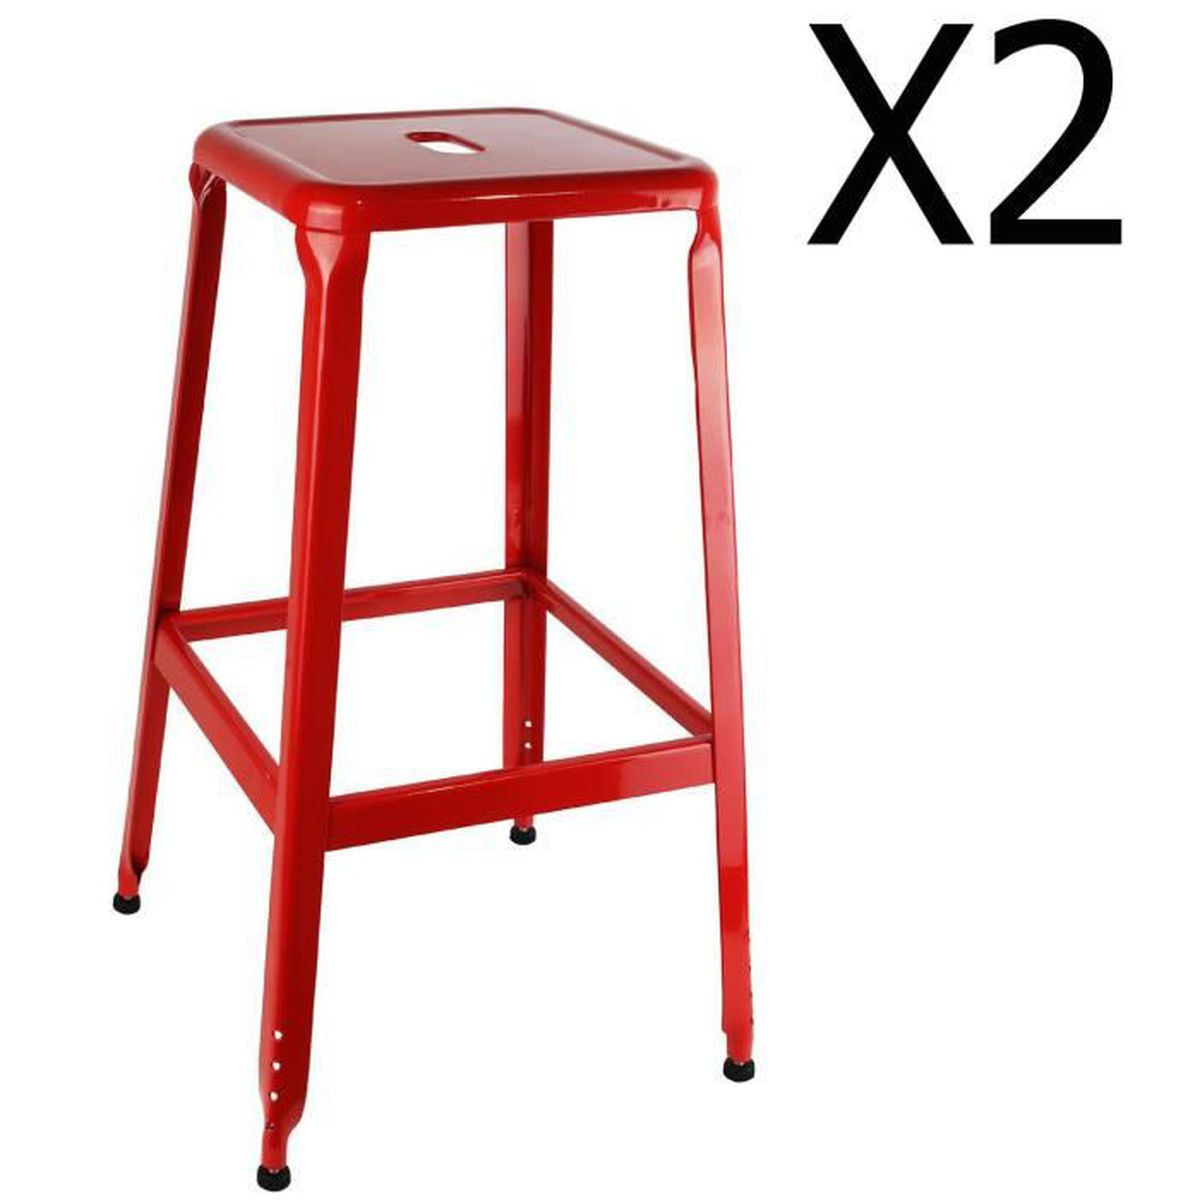 lot de 2 tabouret de bar metal rouge achat vente lot de 2 tabouret de bar metal rouge pas. Black Bedroom Furniture Sets. Home Design Ideas